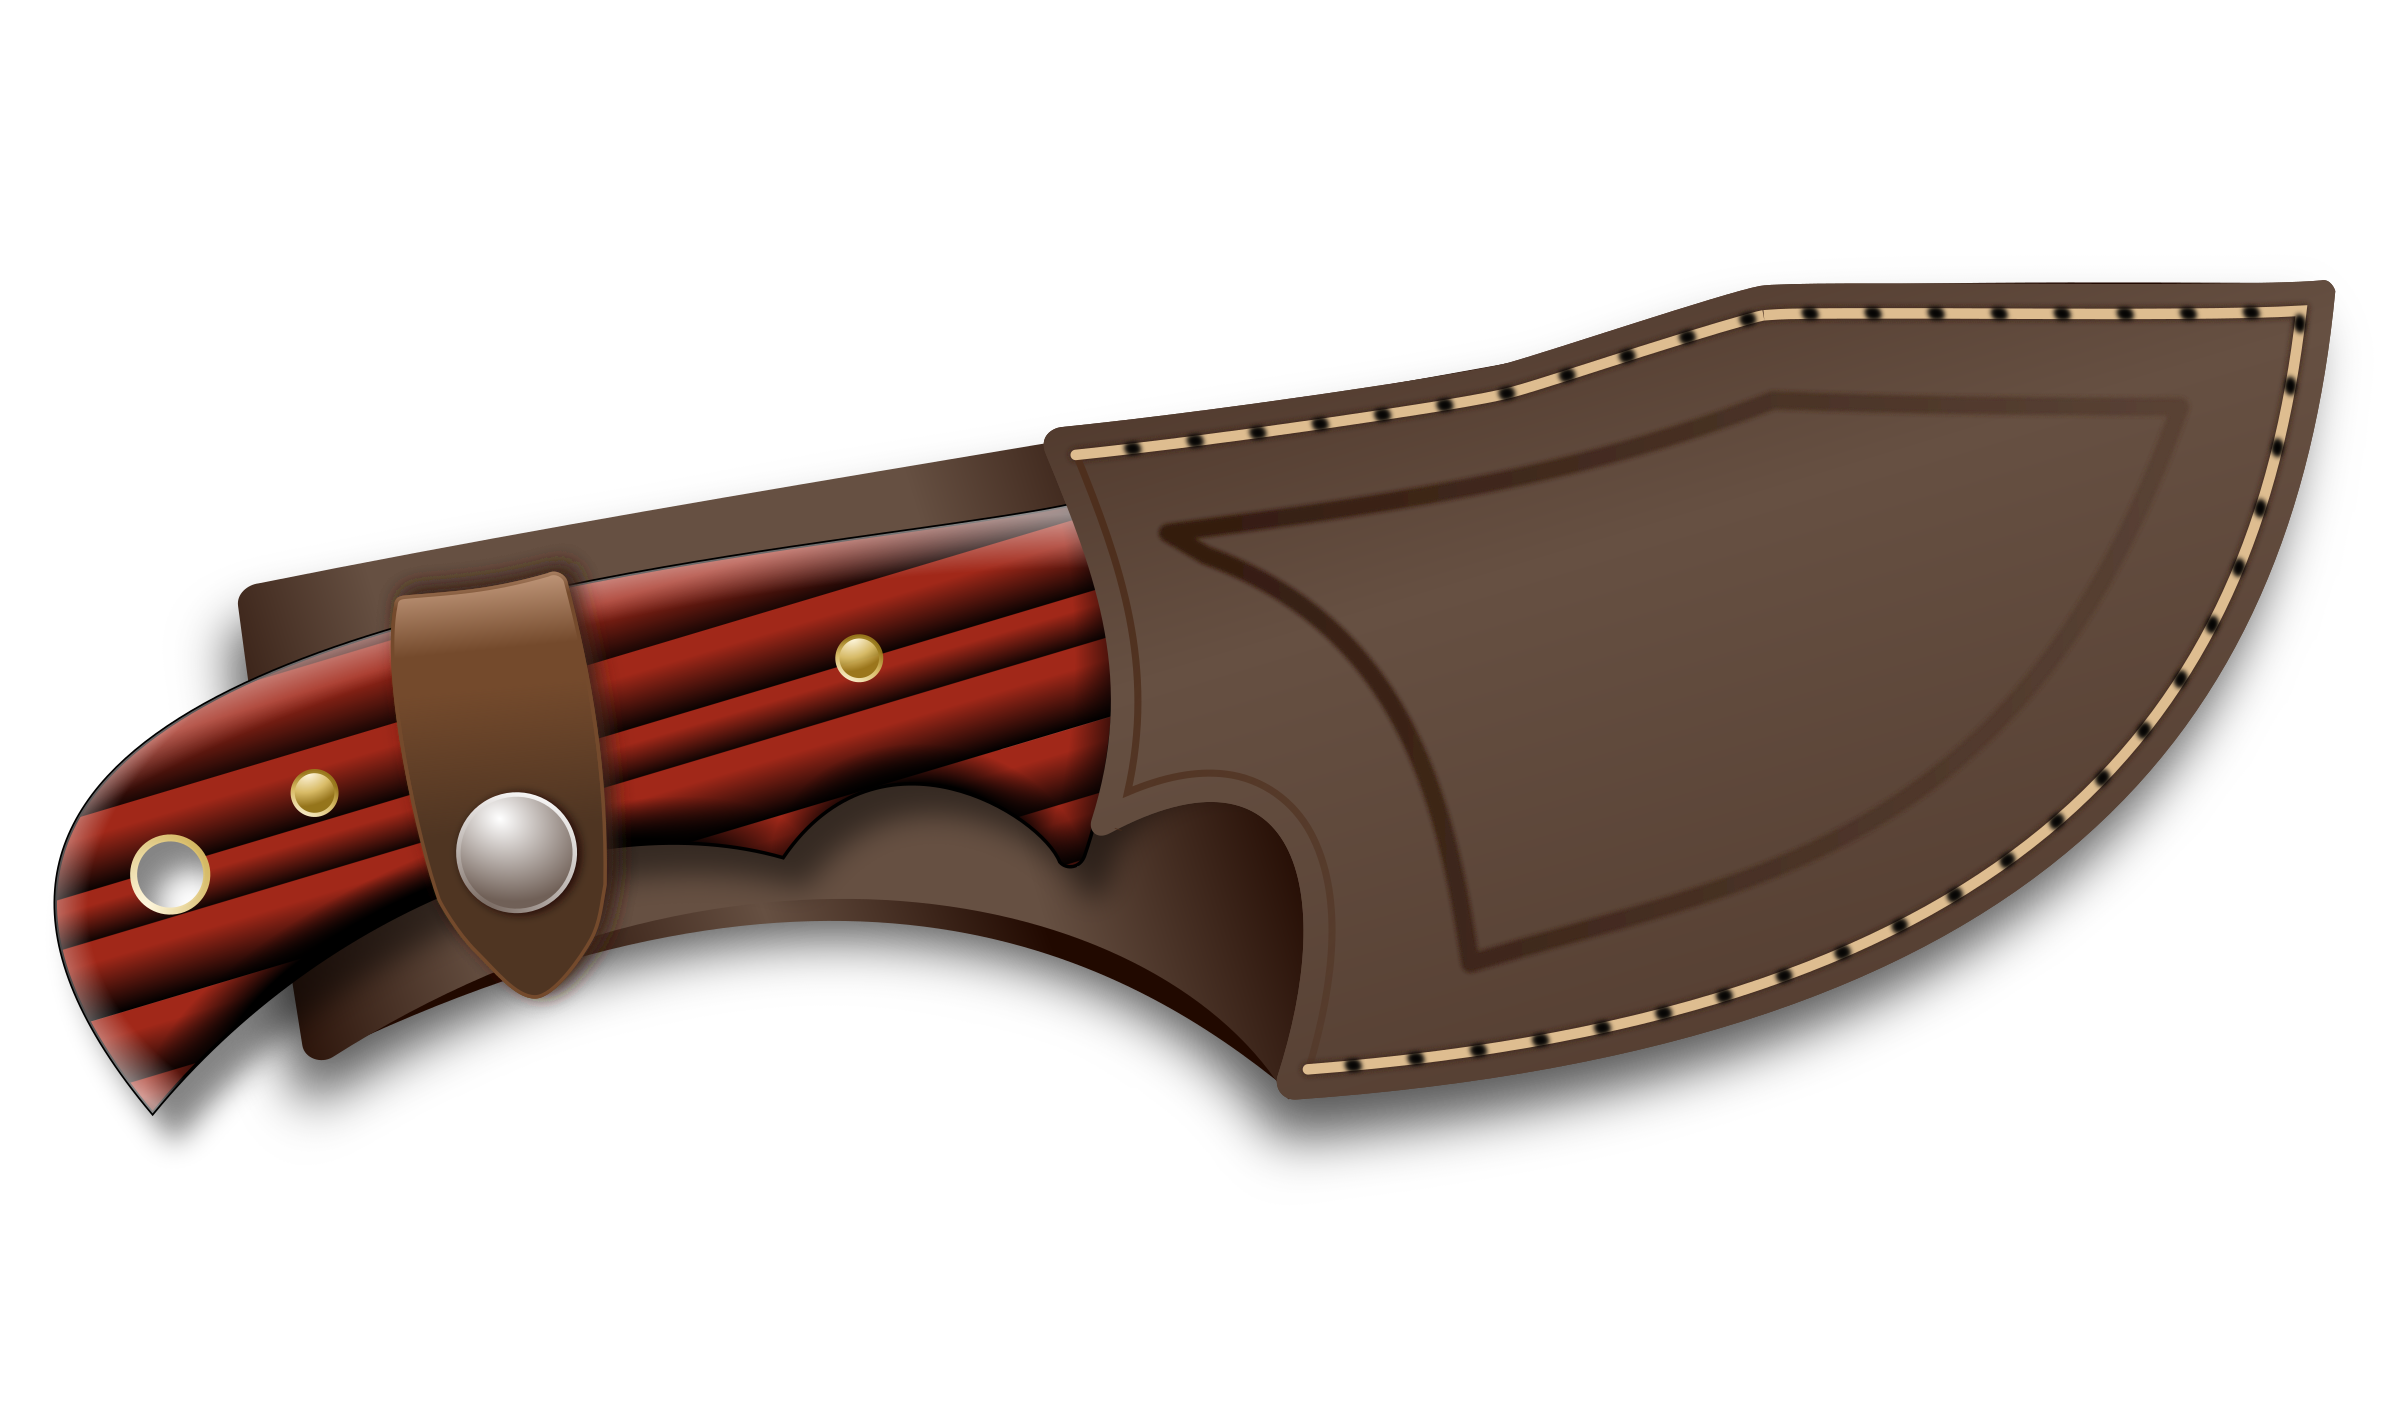 Blade clipart hunting knife #14